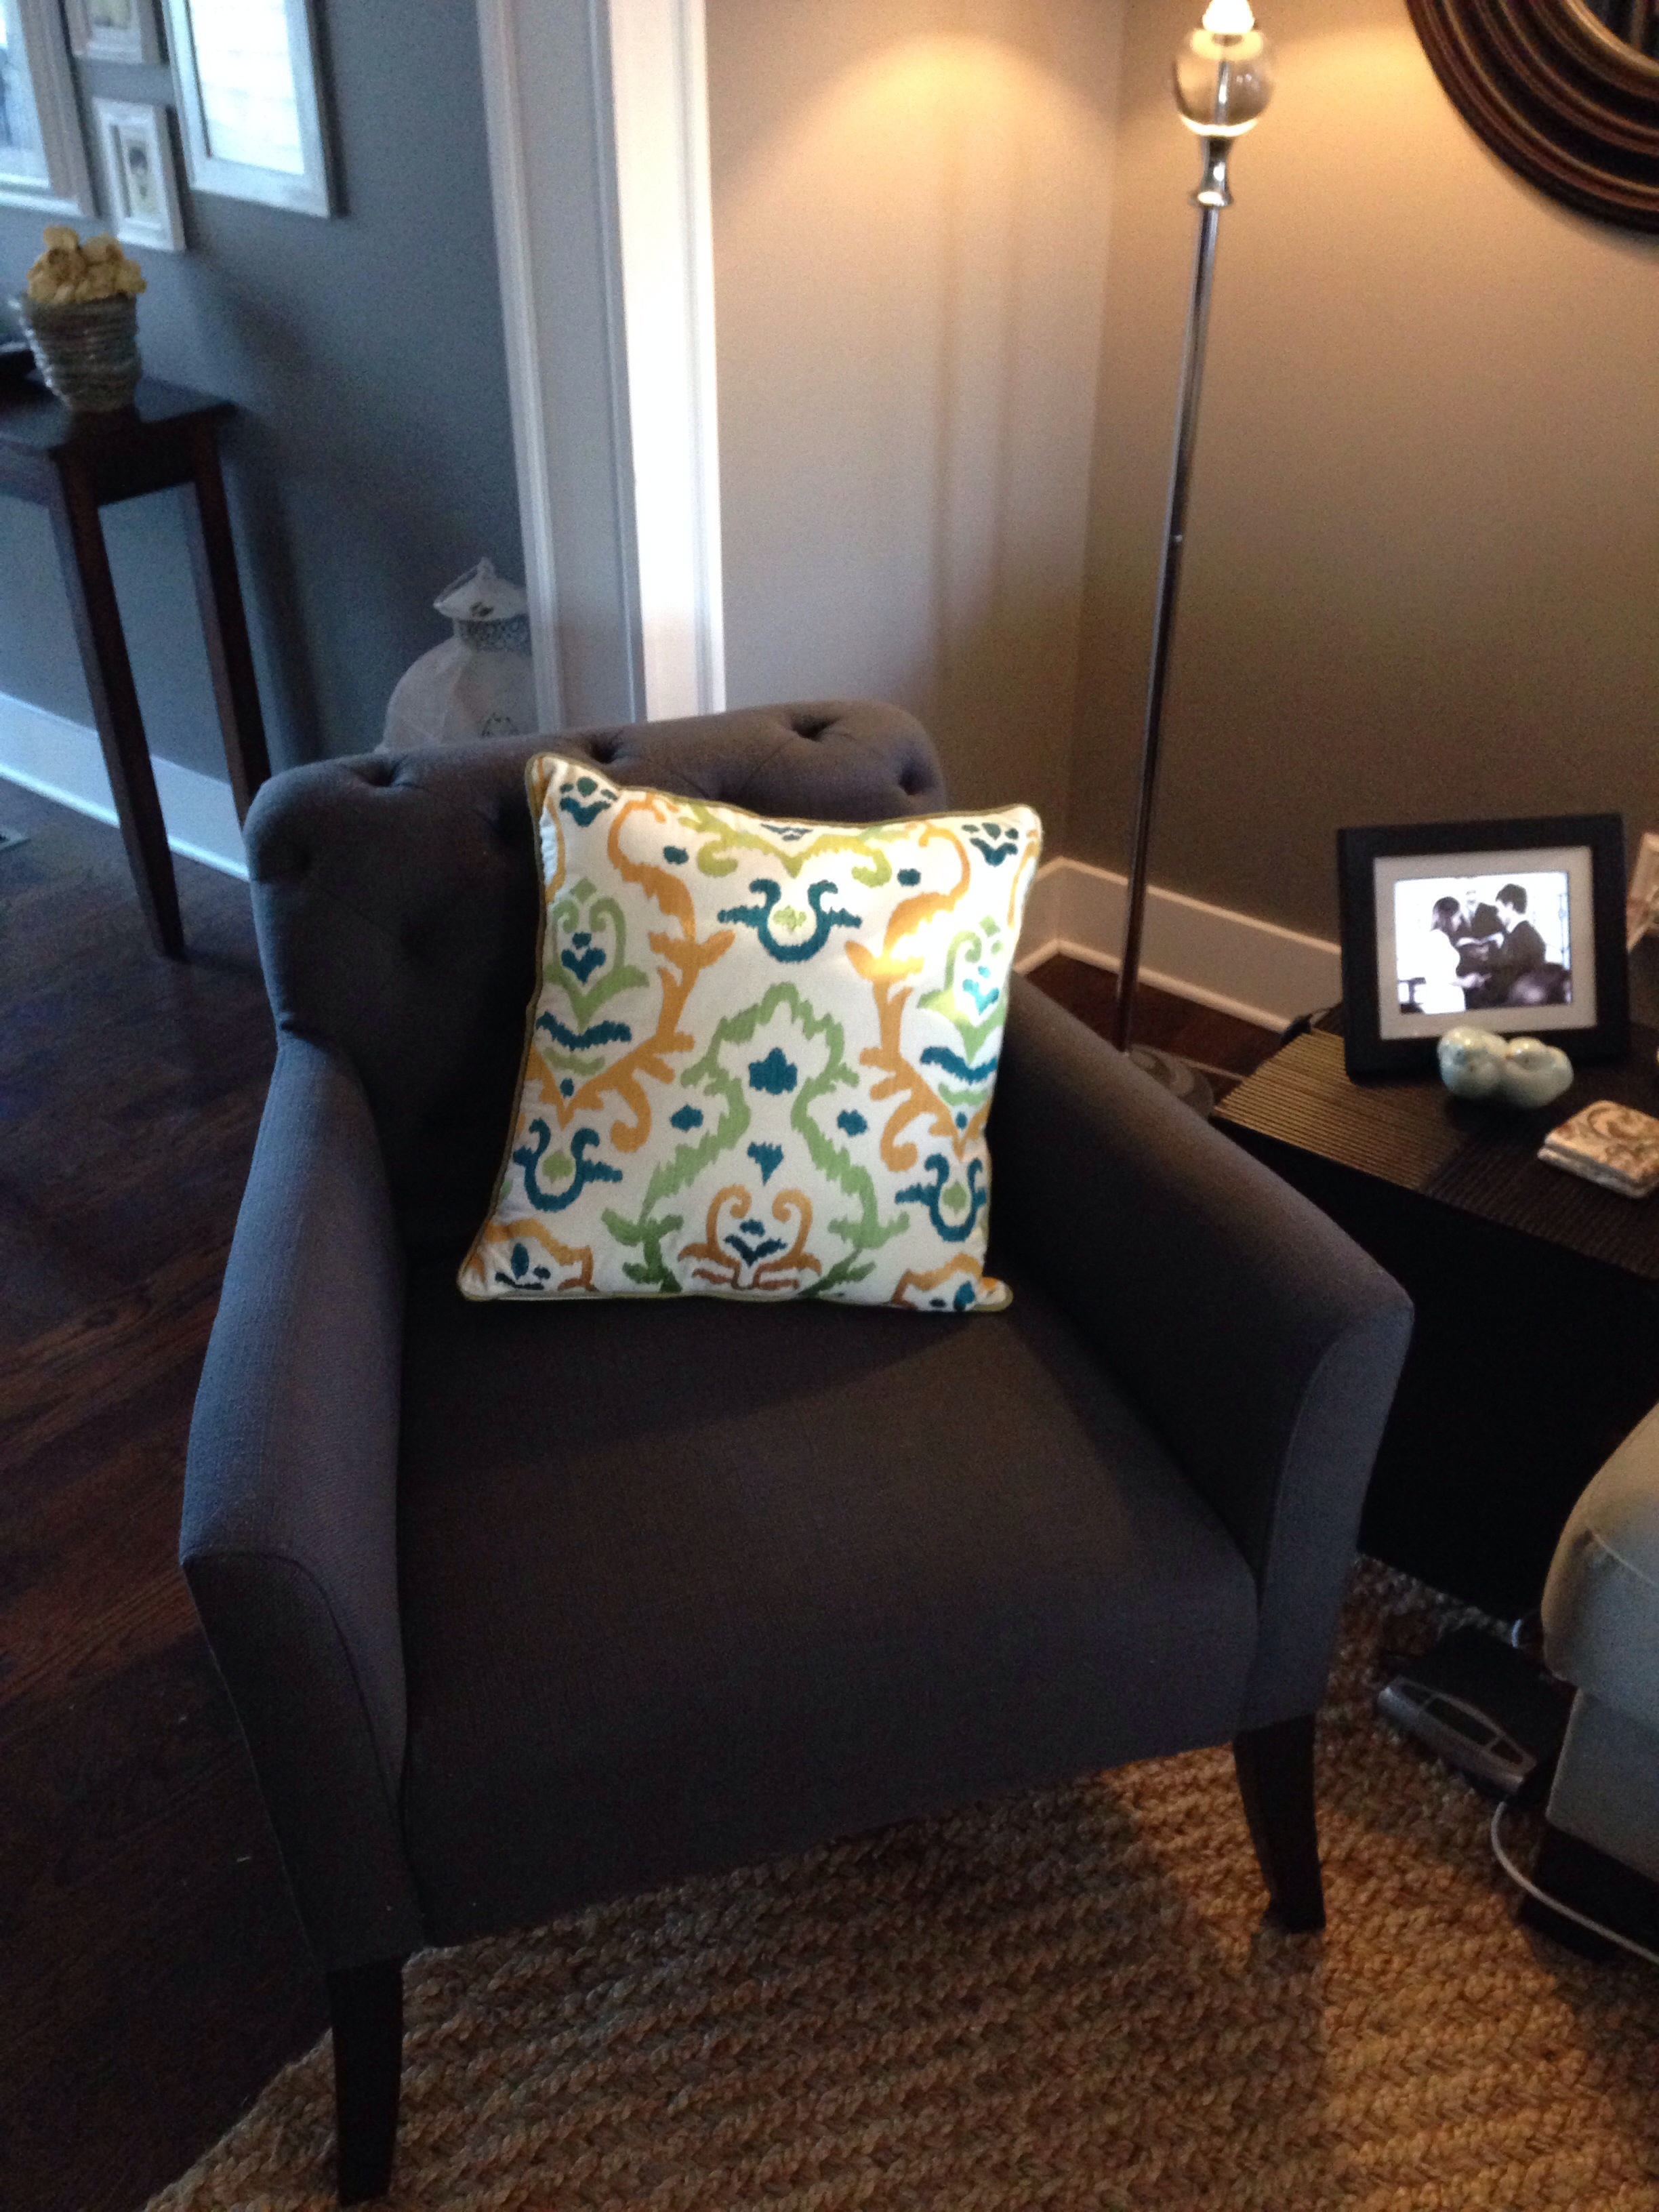 Elton The Chair In His New Home In Our Living Room....come